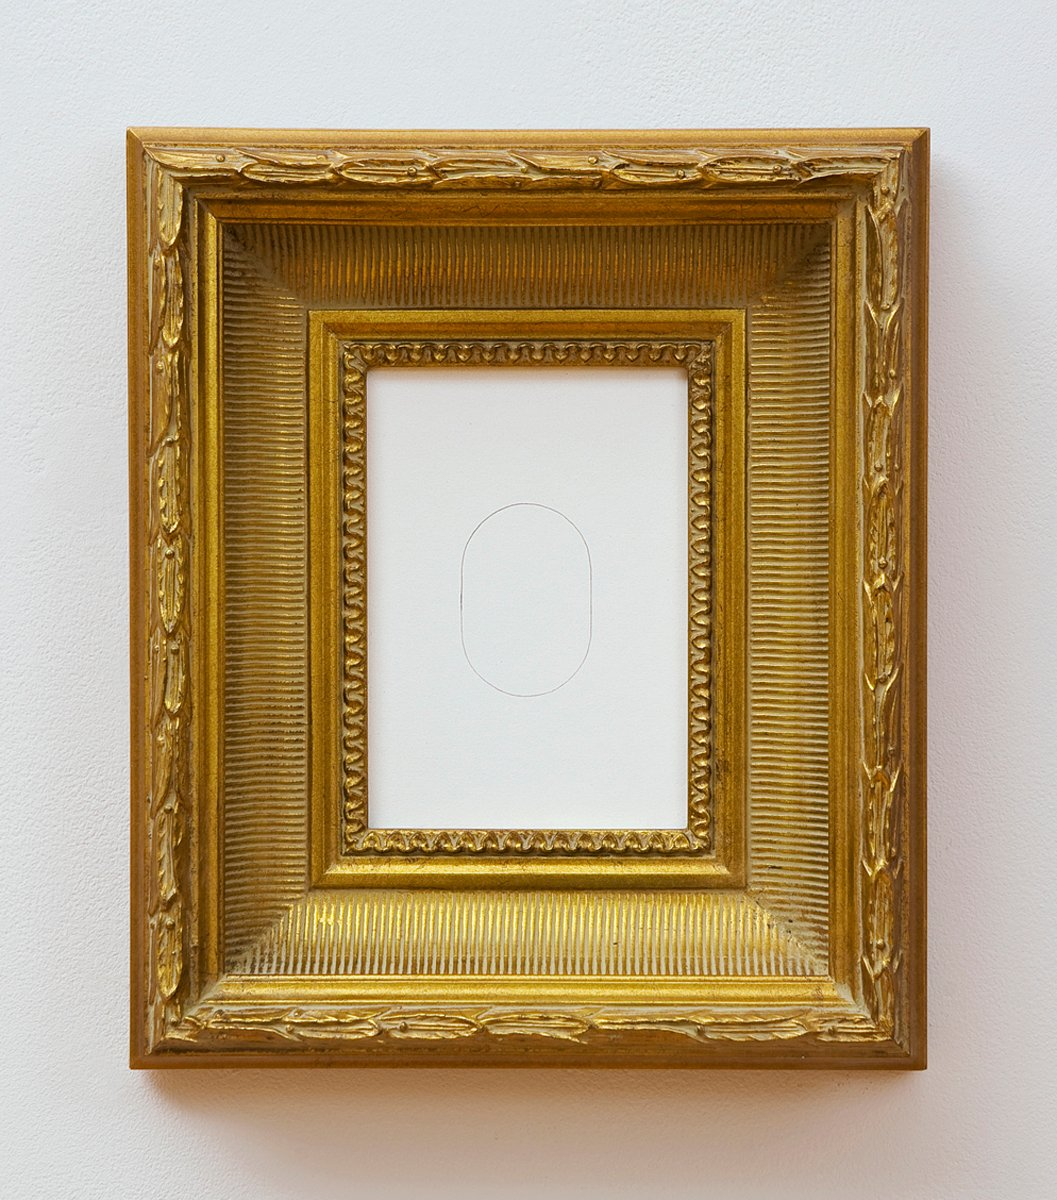 A minimalist pencil line oval on a white background in an ornate gold frame.